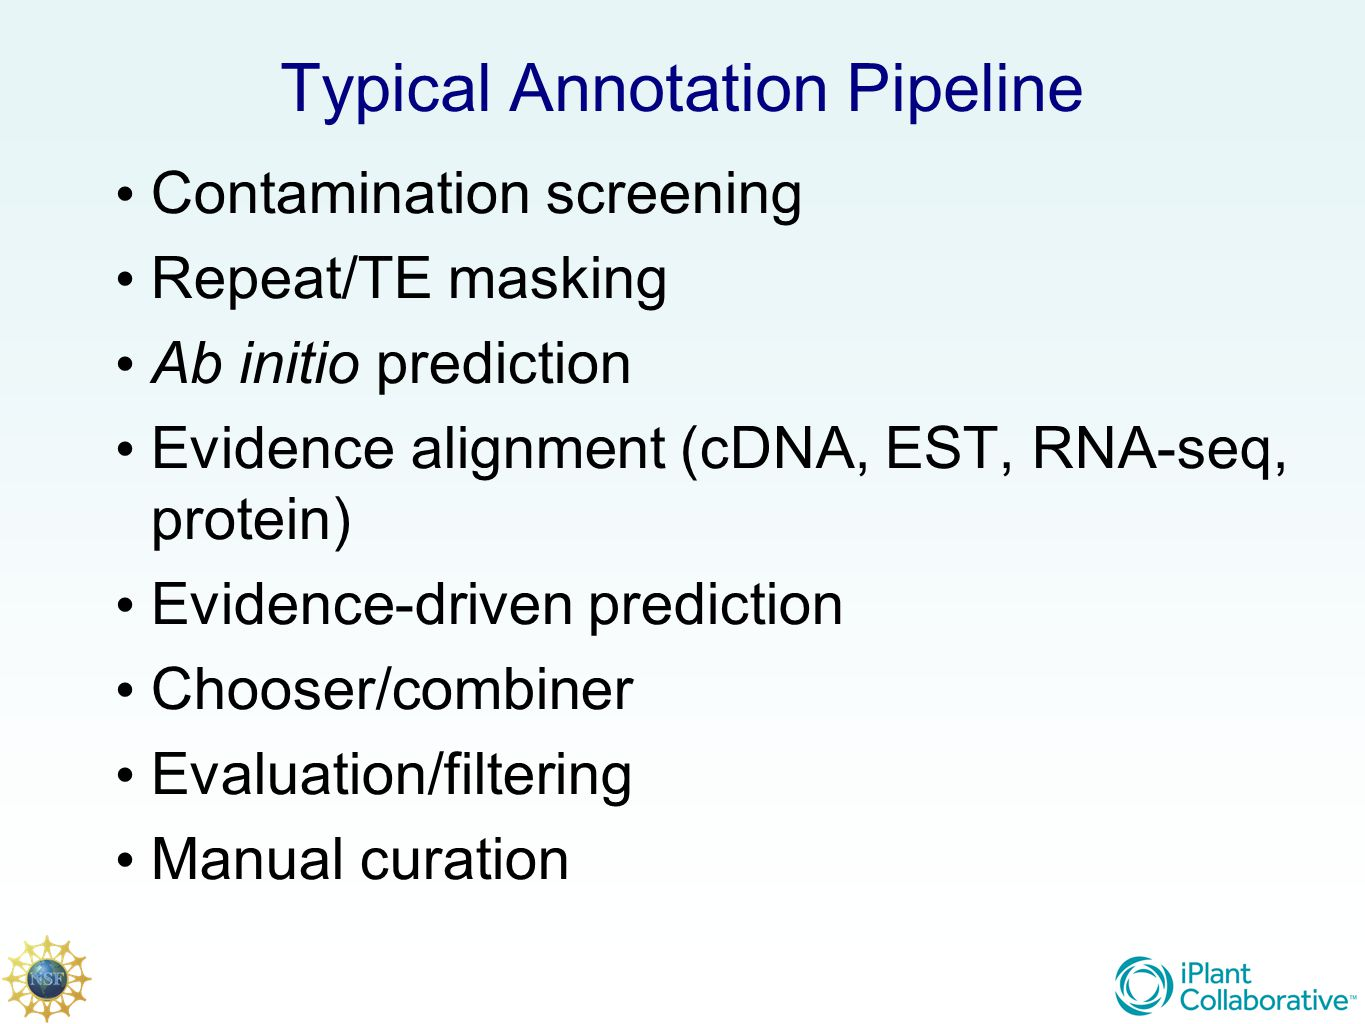 Typical Annotation Pipeline Contamination screening Repeat/TE masking Ab initio prediction Evidence alignment (cDNA, EST, RNA-seq, protein) Evidence-driven prediction Chooser/combiner Evaluation/filtering Manual curation